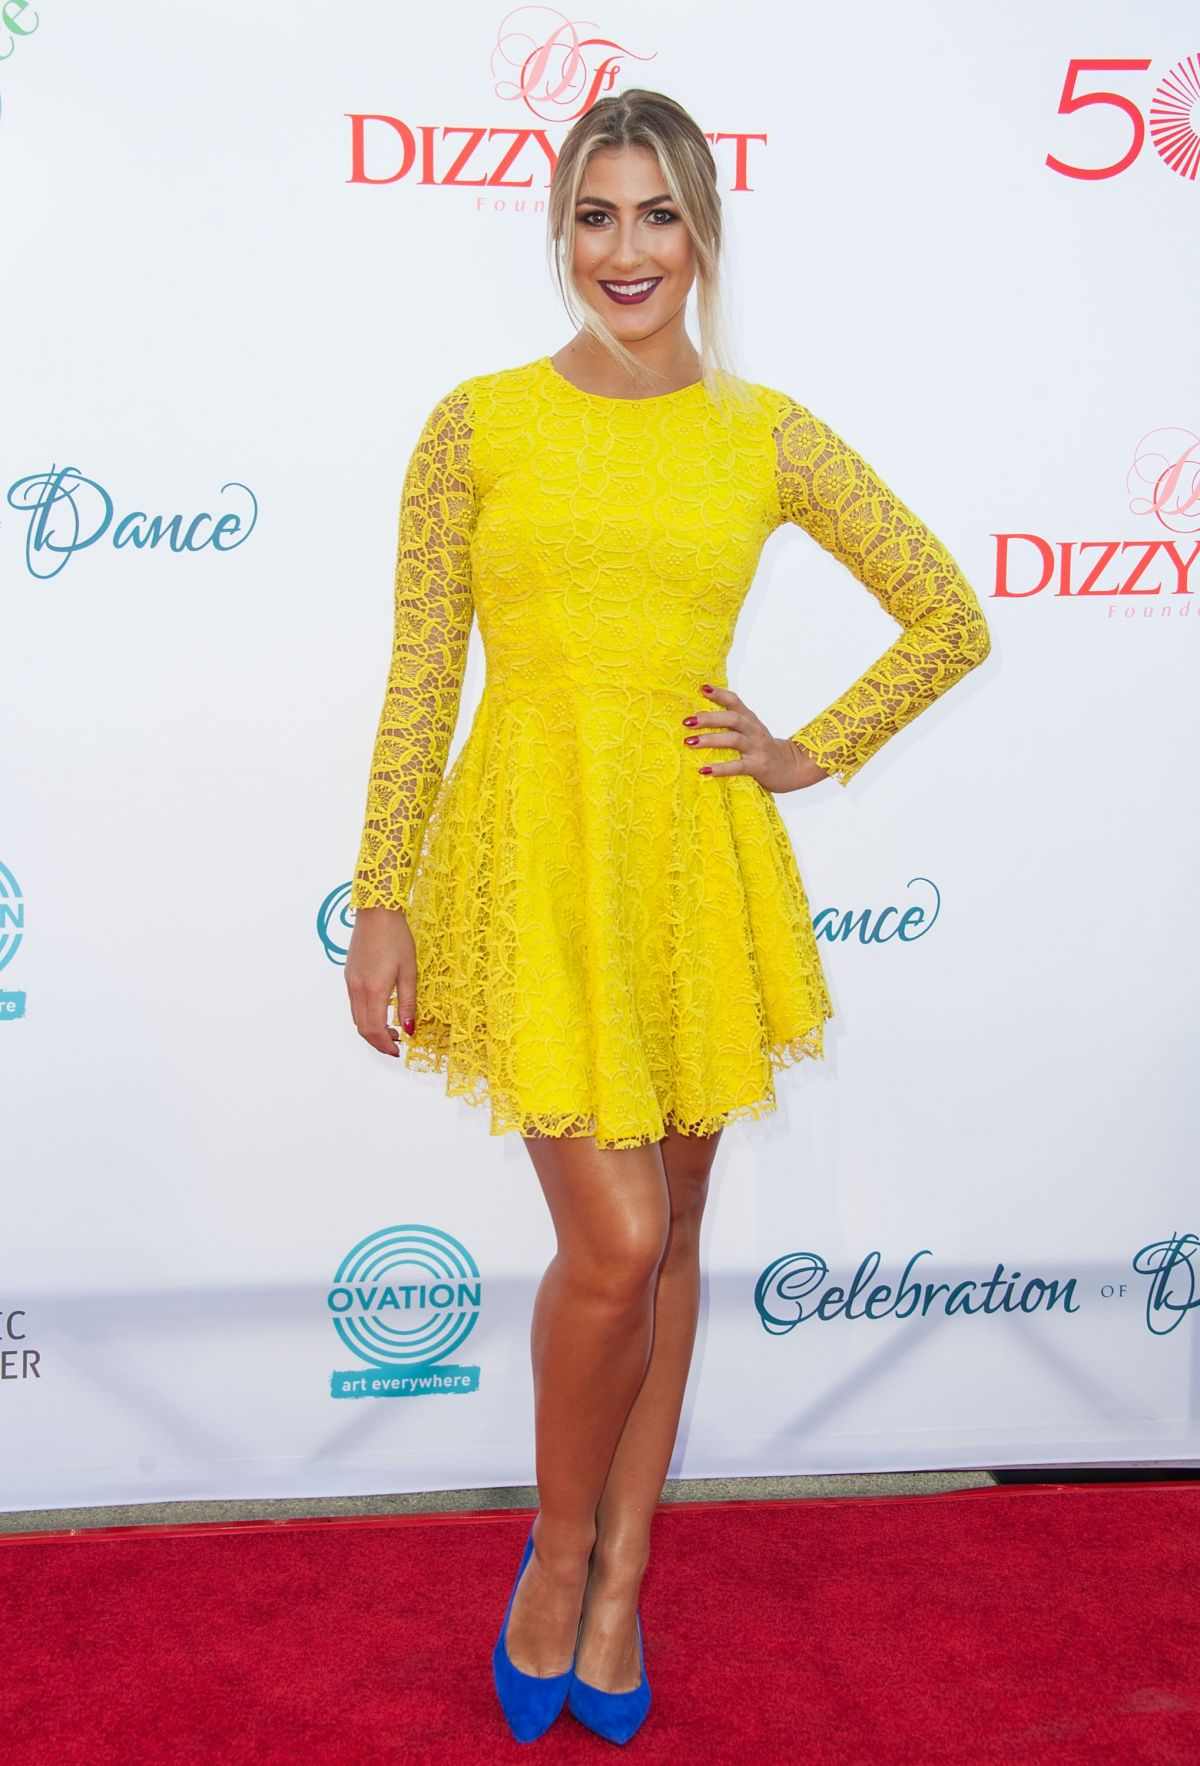 EMMA SLATER at Celebration of Dance Gala